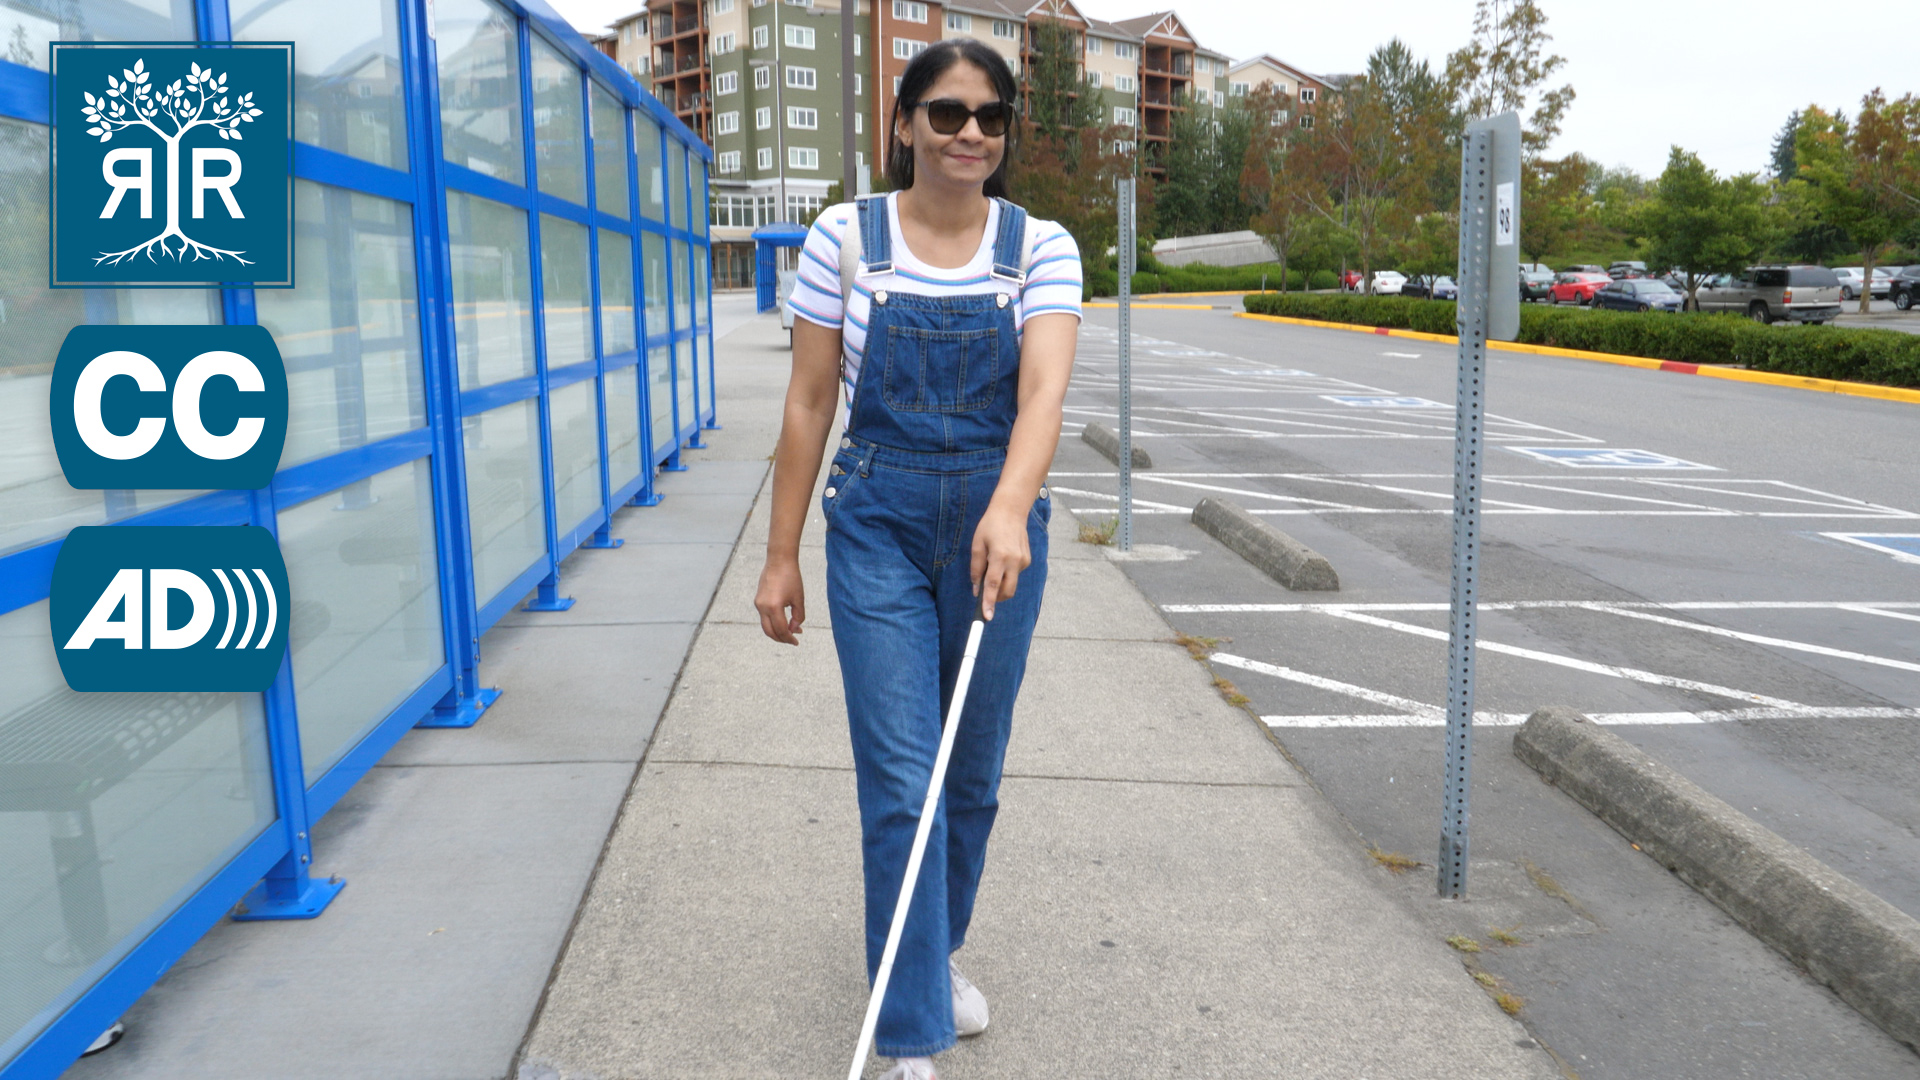 Amandeep walking on the sidewalk with their white cane